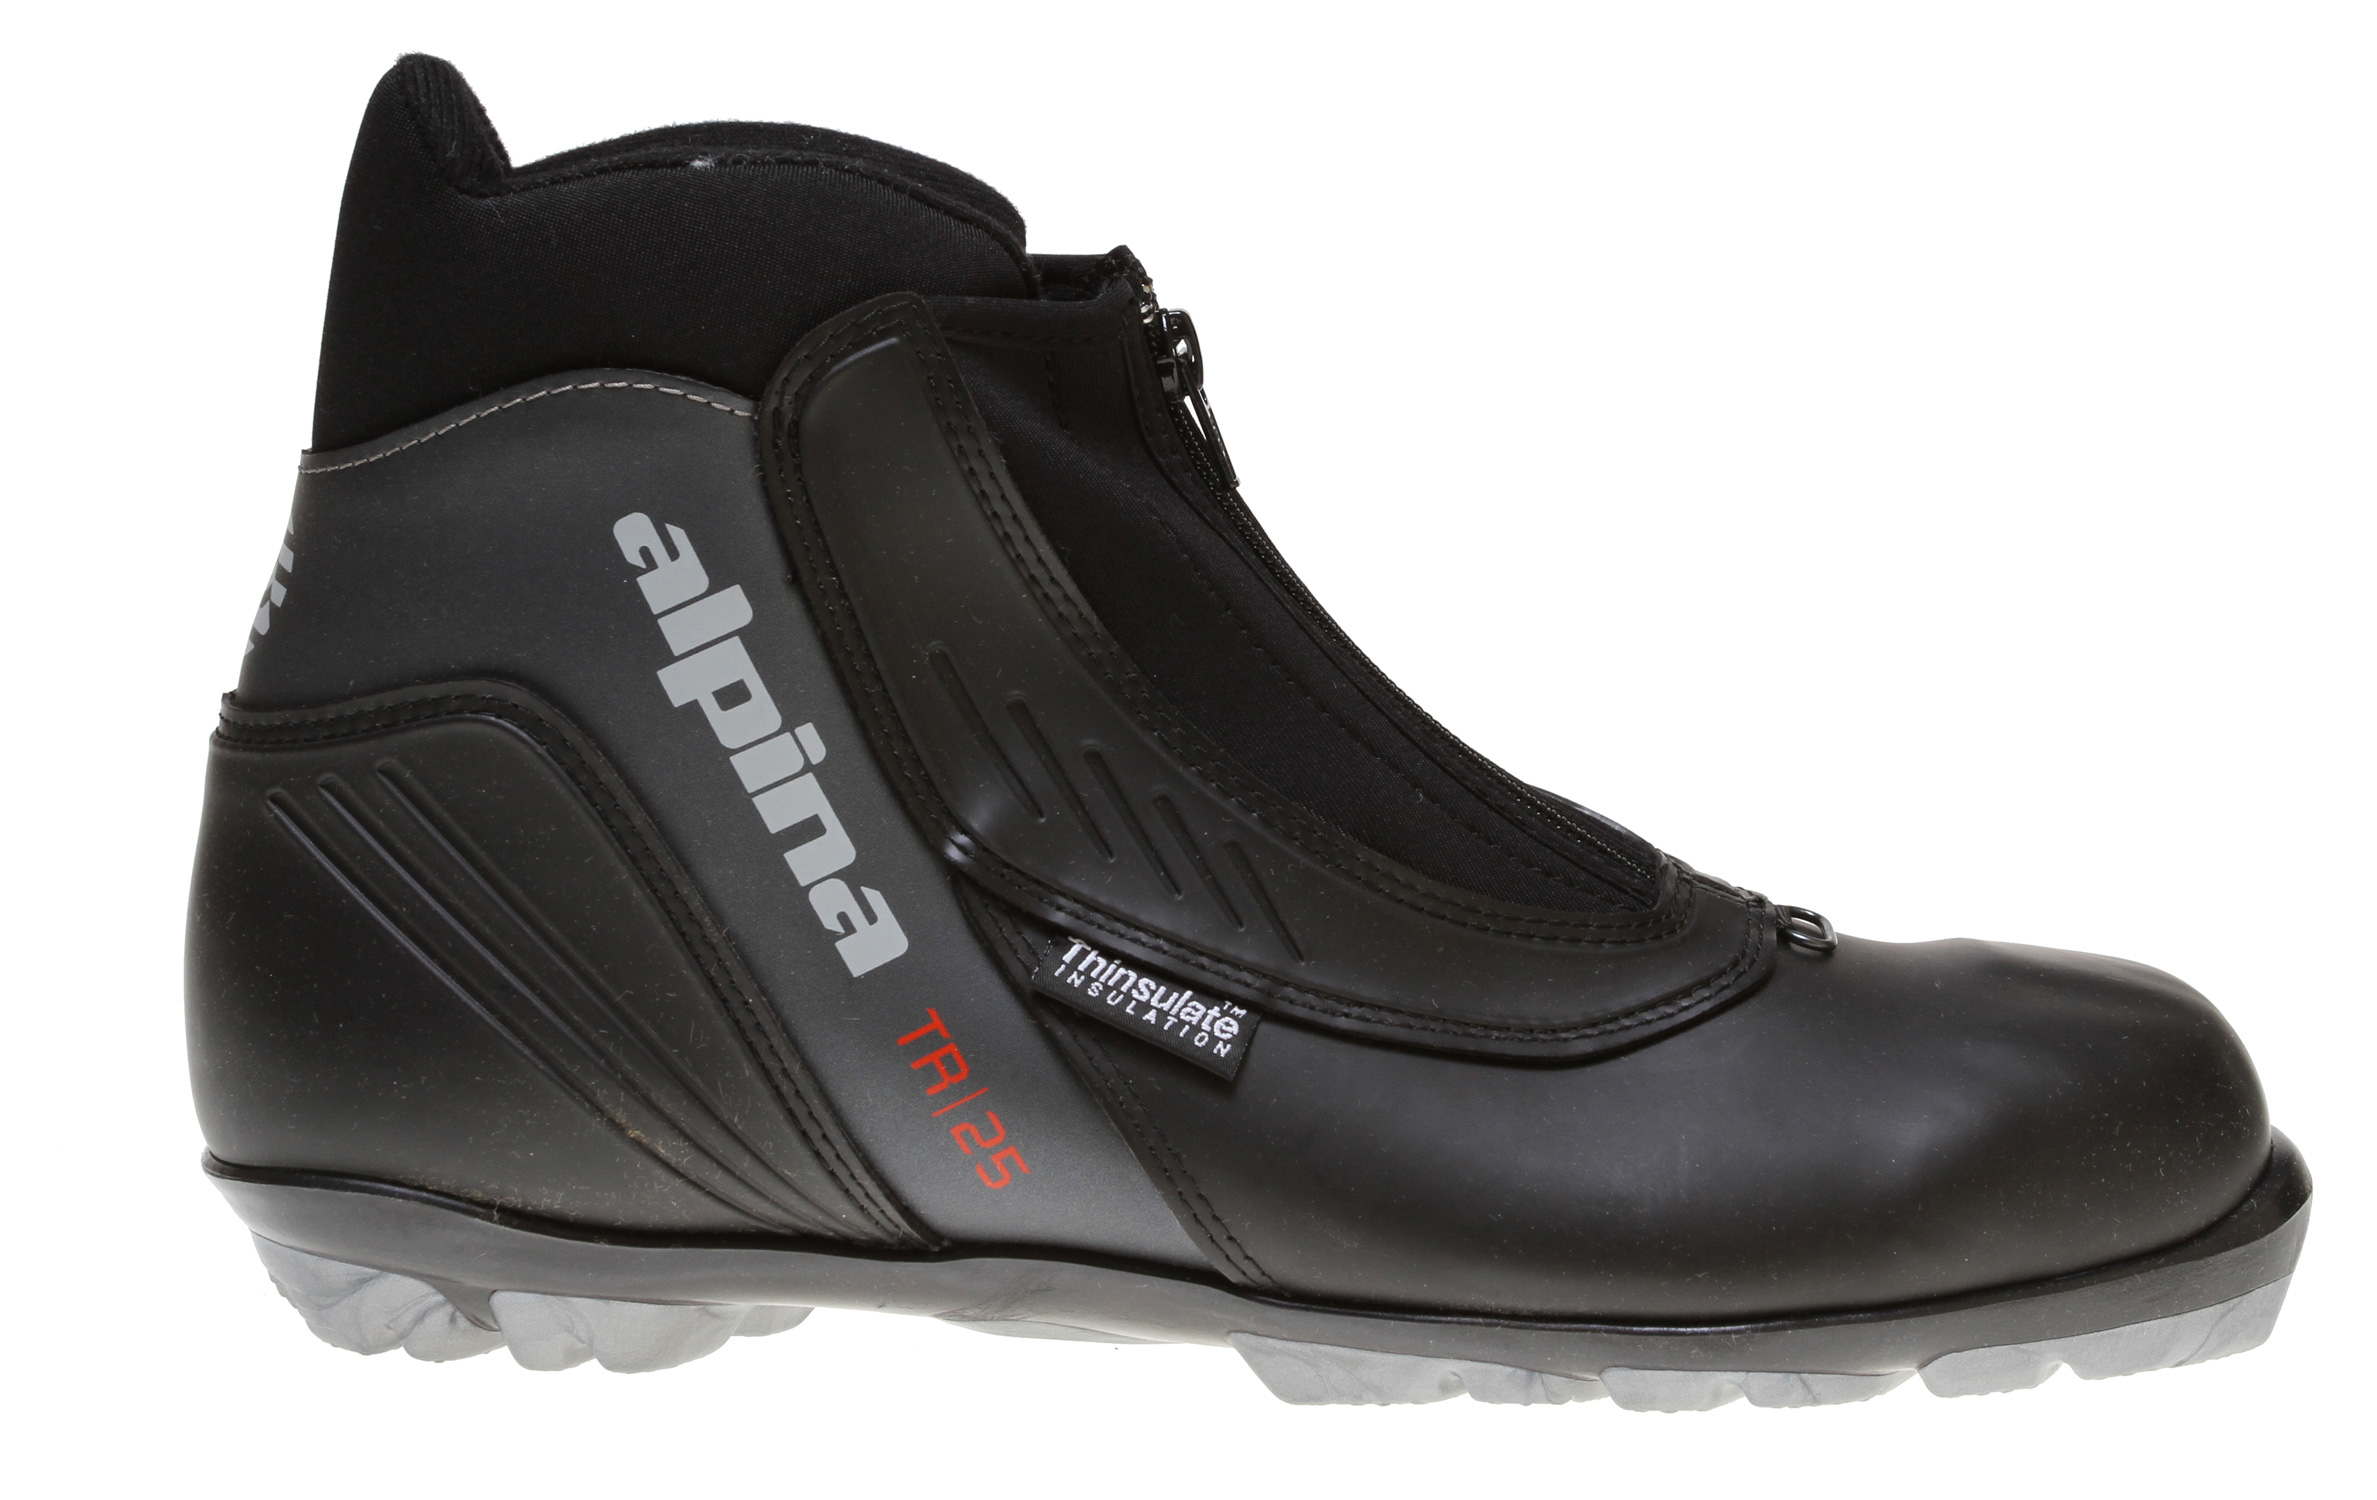 Ski Key Features of the Alpina TR 25 Cross Country Boots: Water-resistant synthetic uppers, padded collars and tongue Thinsulate insulation Speed lacing system NNN touring soles - $56.95